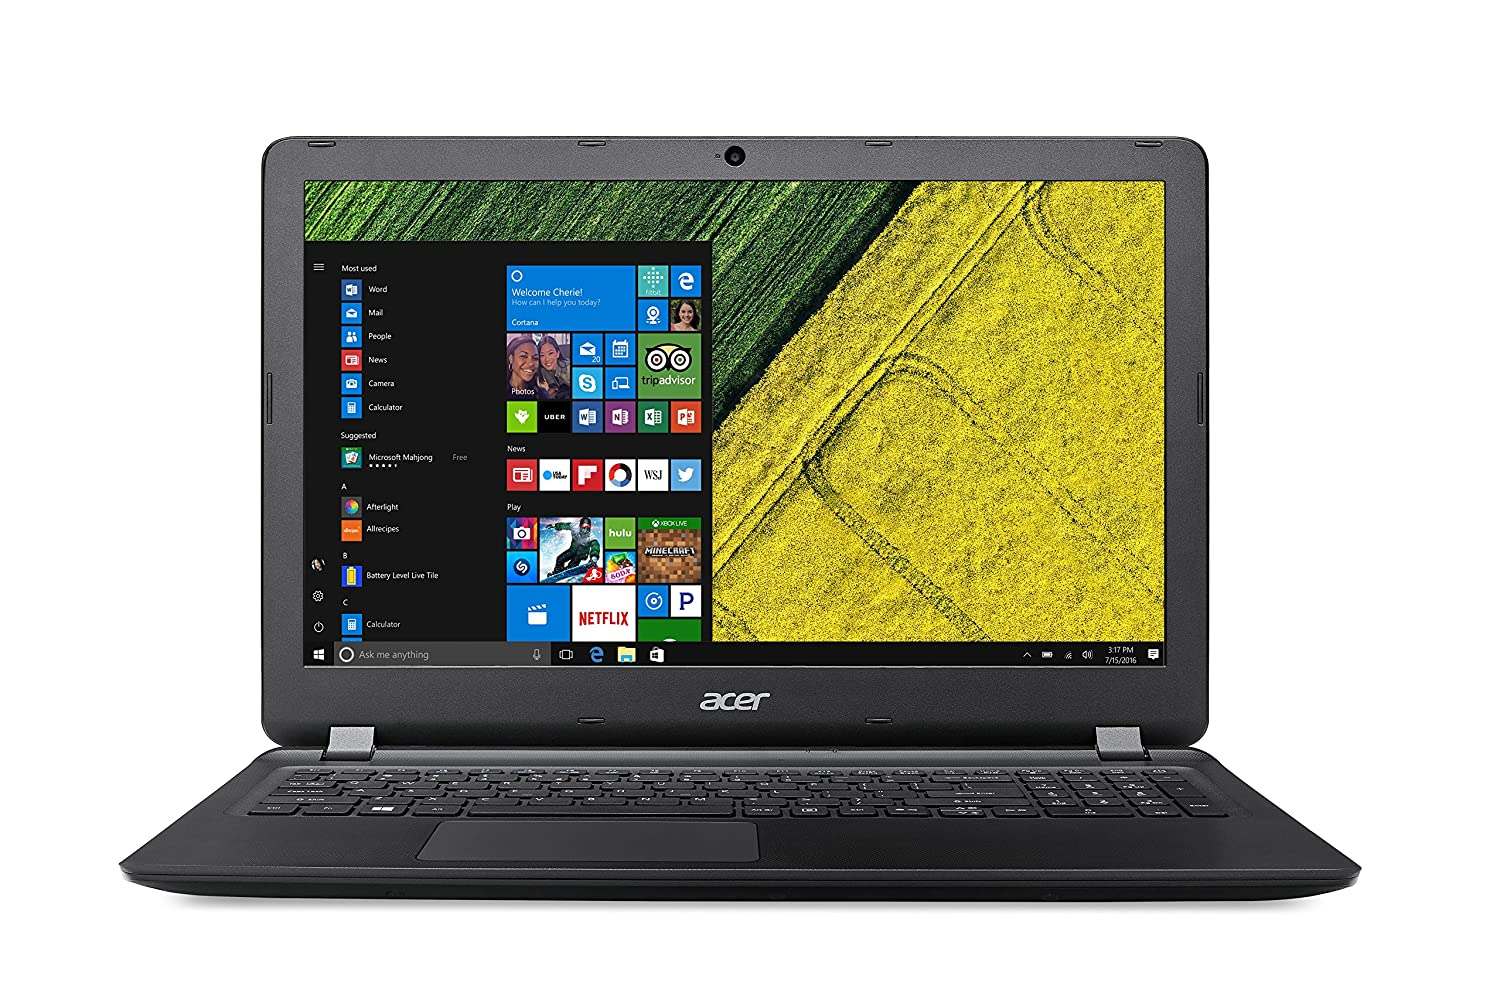 Acer Aspire ES1-523-67XS Notebook, Display da 15.6 HD LED, Processore Quad-Core A6-7310, RAM da 8 GB DDR3, 500 GB HDD, Scheda Grafica Integrata AMD Radeon R4, Nero